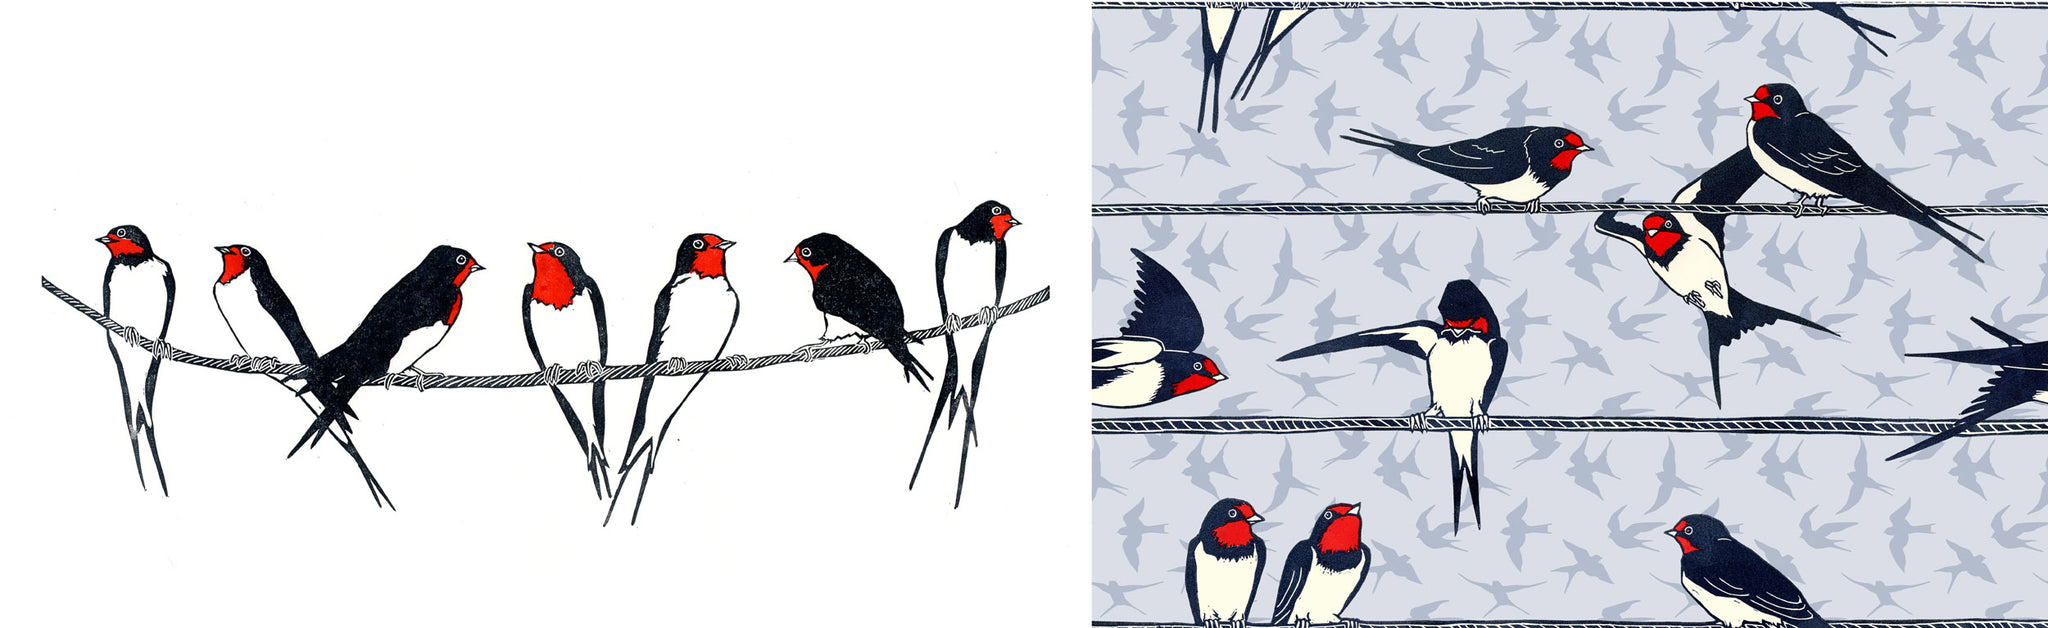 Swallow Fabric Design